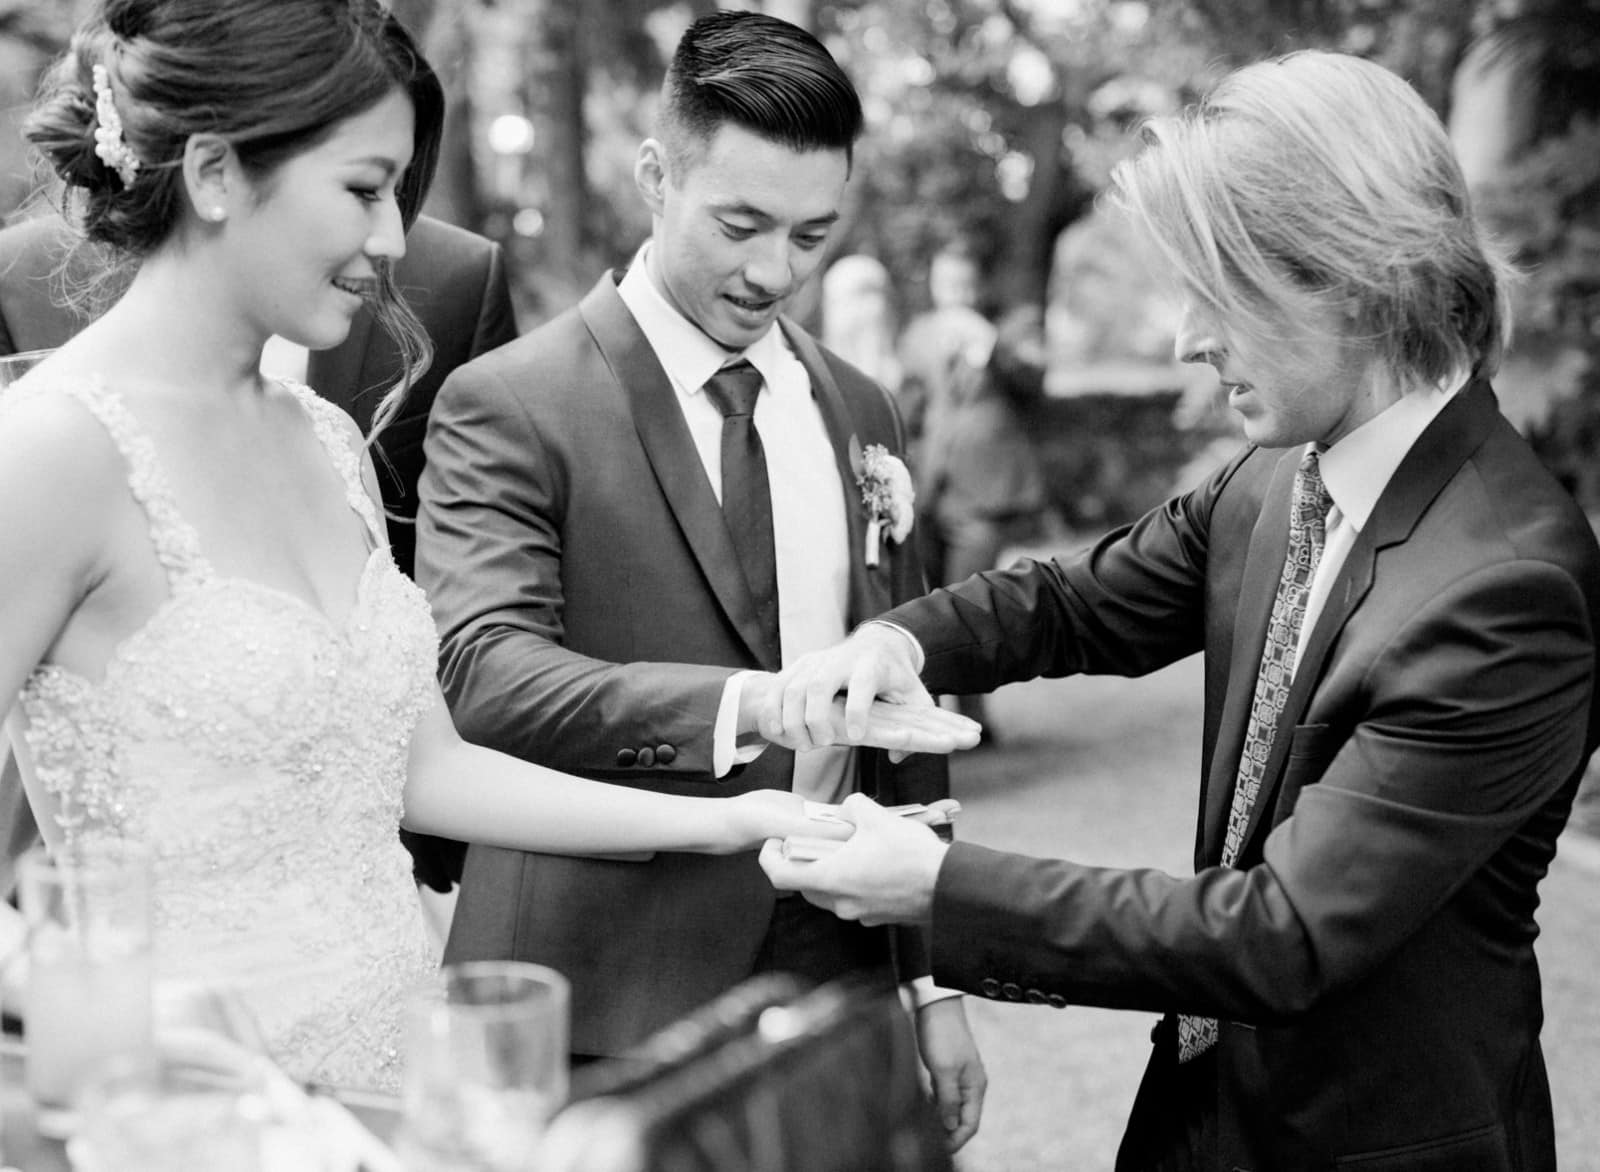 Wedding Magicians For Hire: It's All The Rage in England